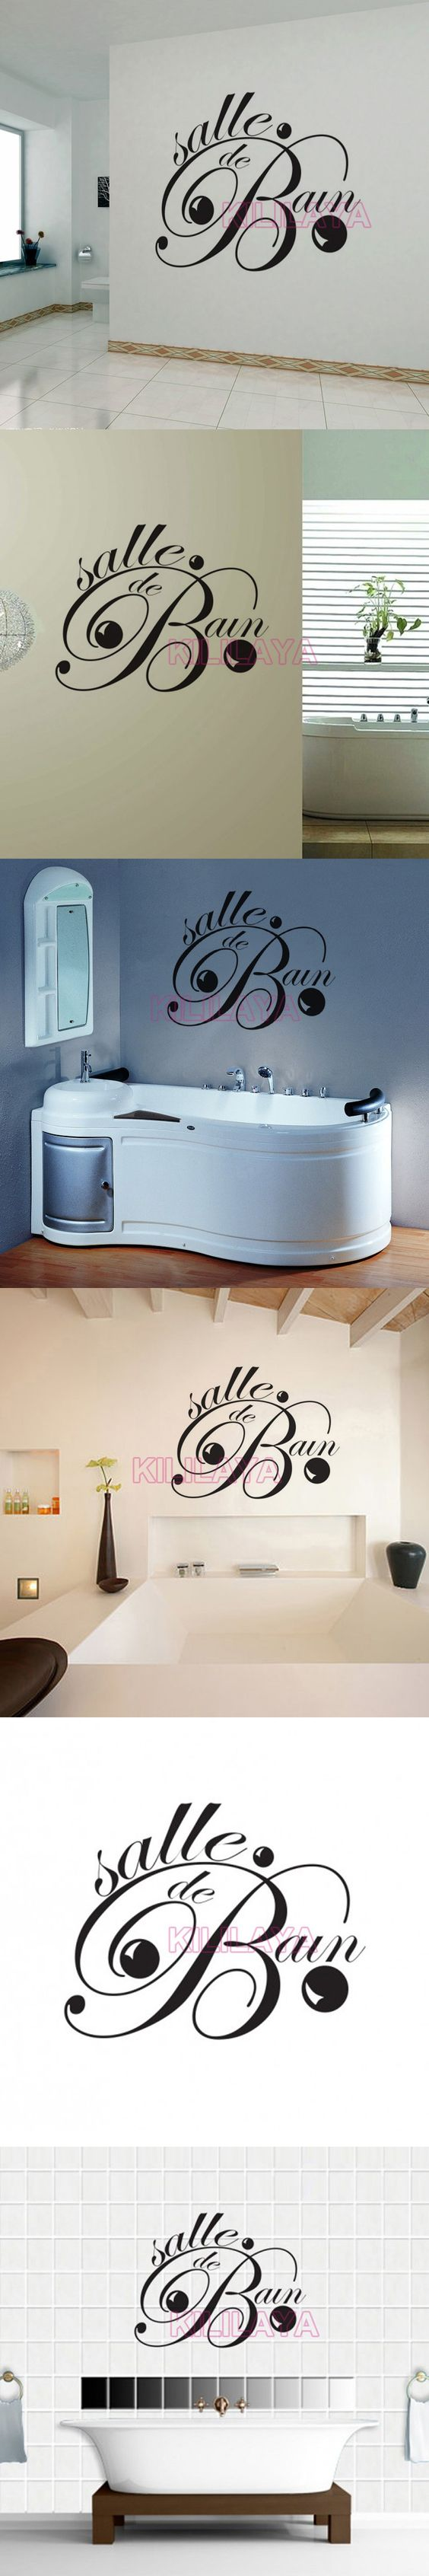 Stickers French Salle De Bain Vinyl Wall Sticker For